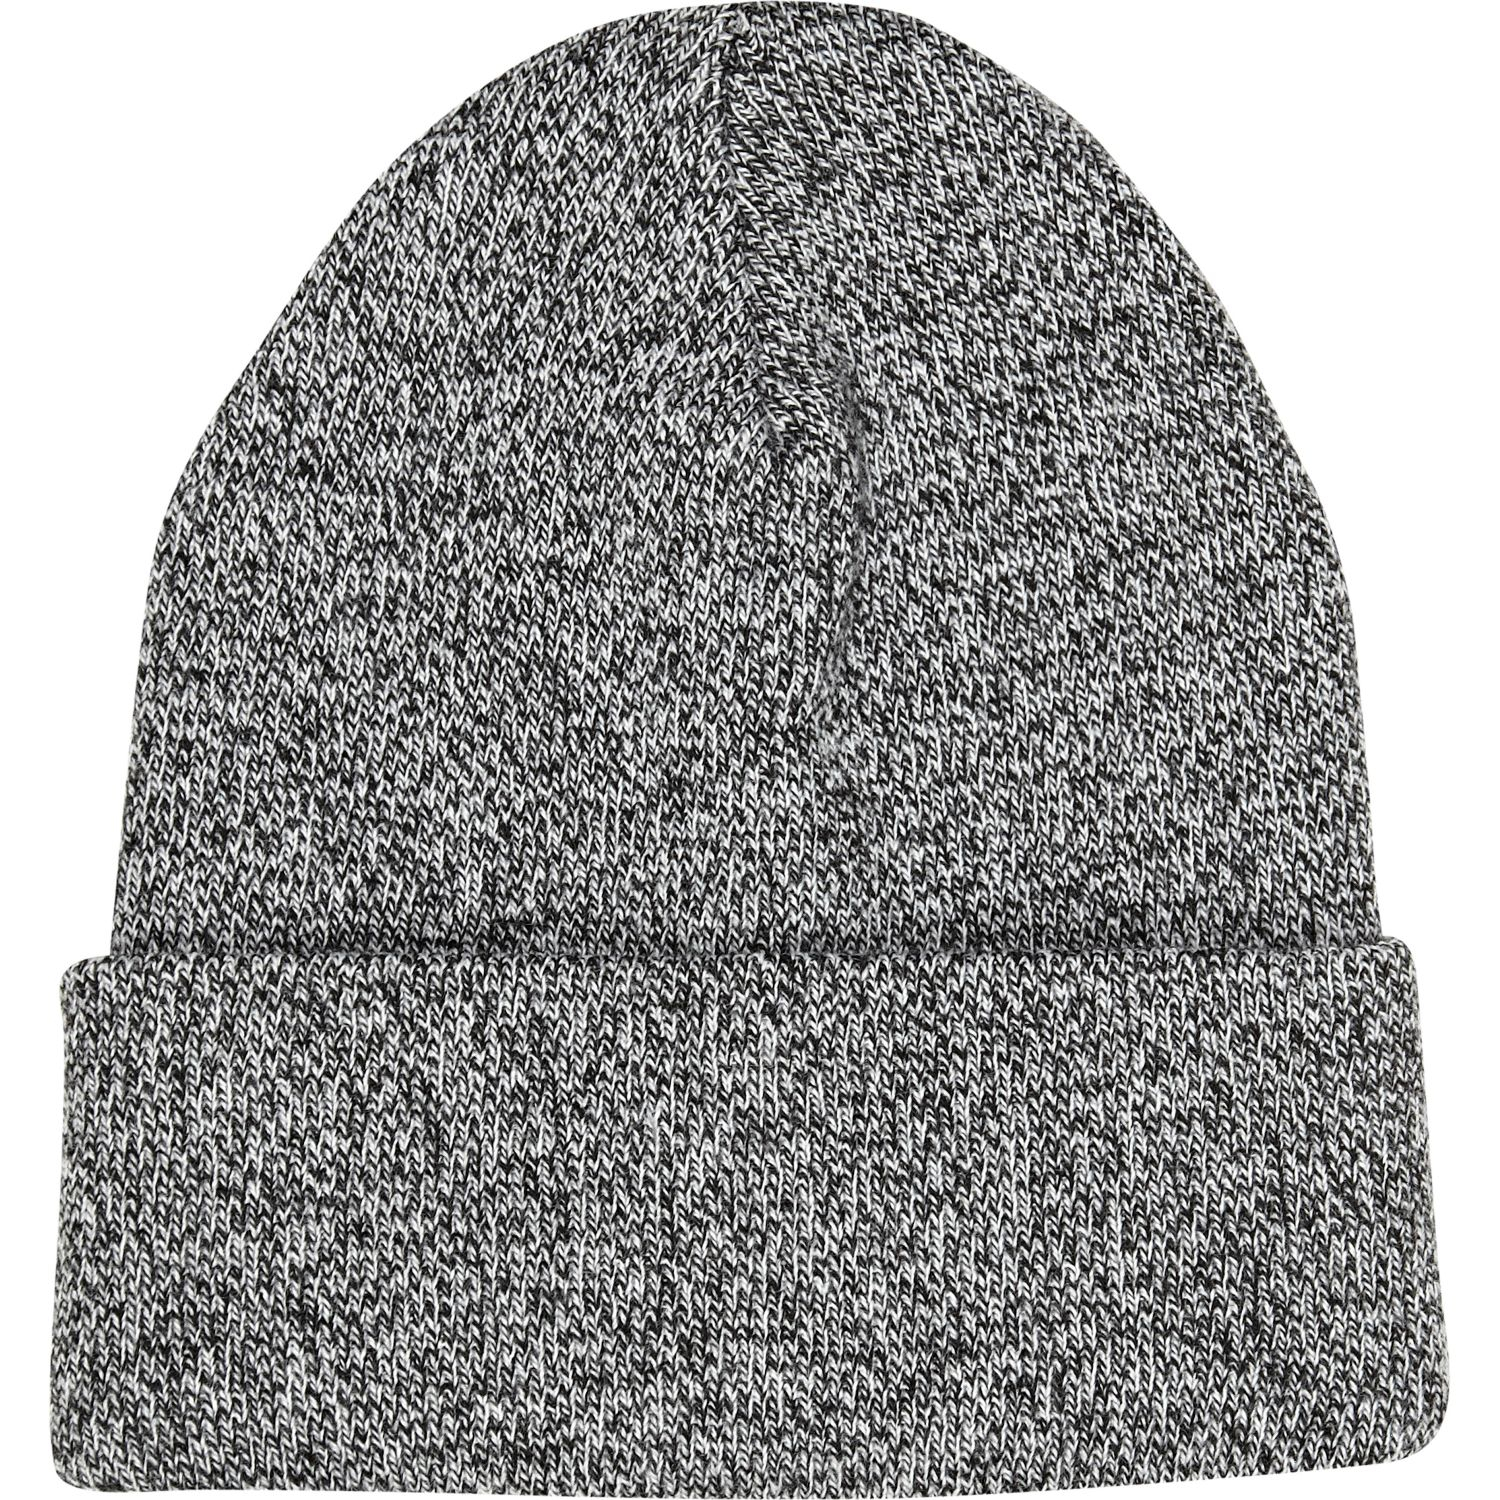 Shop for white beanie hat online at Target. Free shipping on purchases over $35 and save 5% every day with your Target REDcard. skip to main content skip to footer.